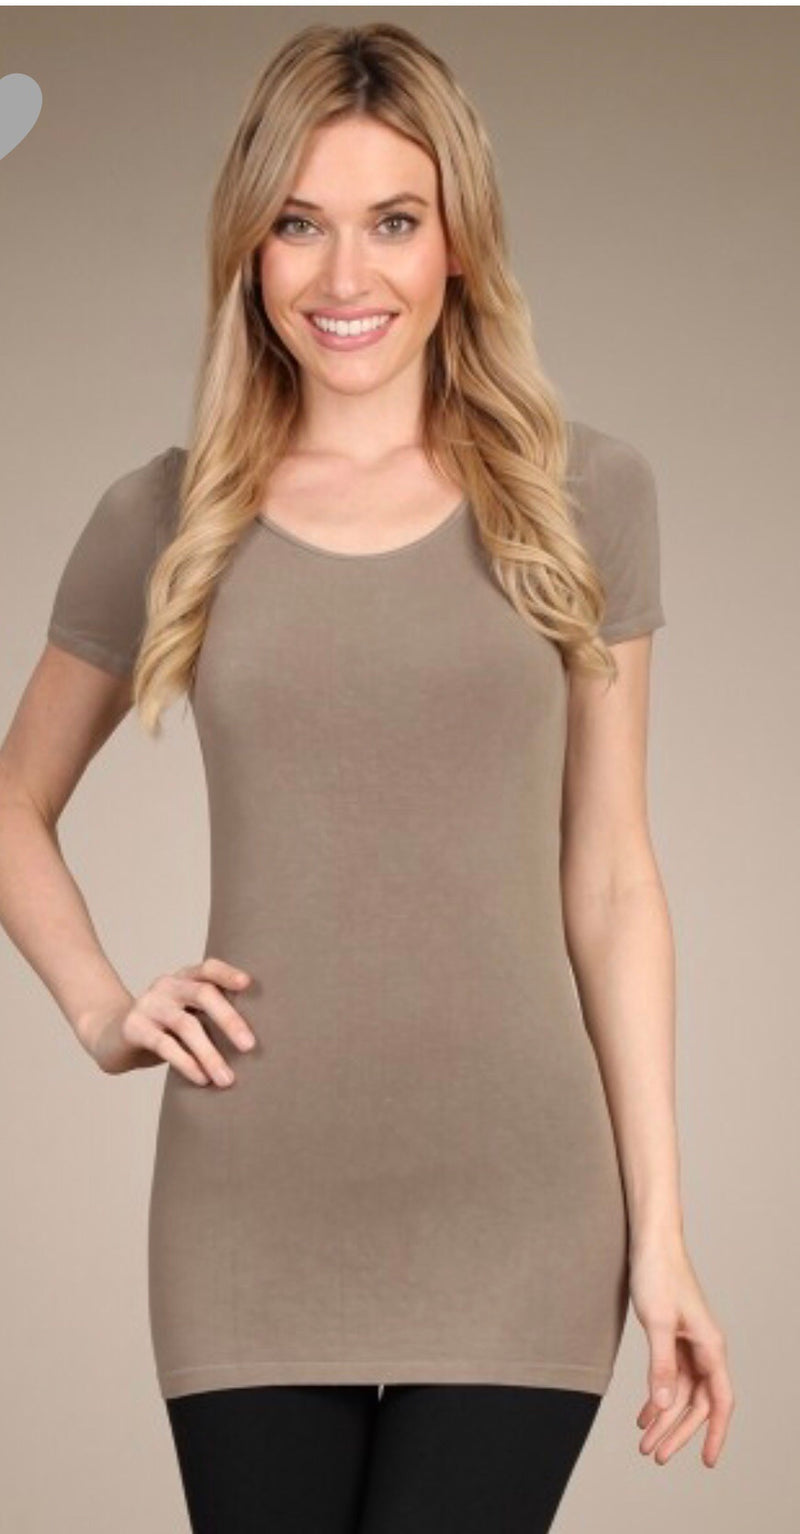 Scoop neck short sleeve top color sandstone - WenLeeMae Boutique